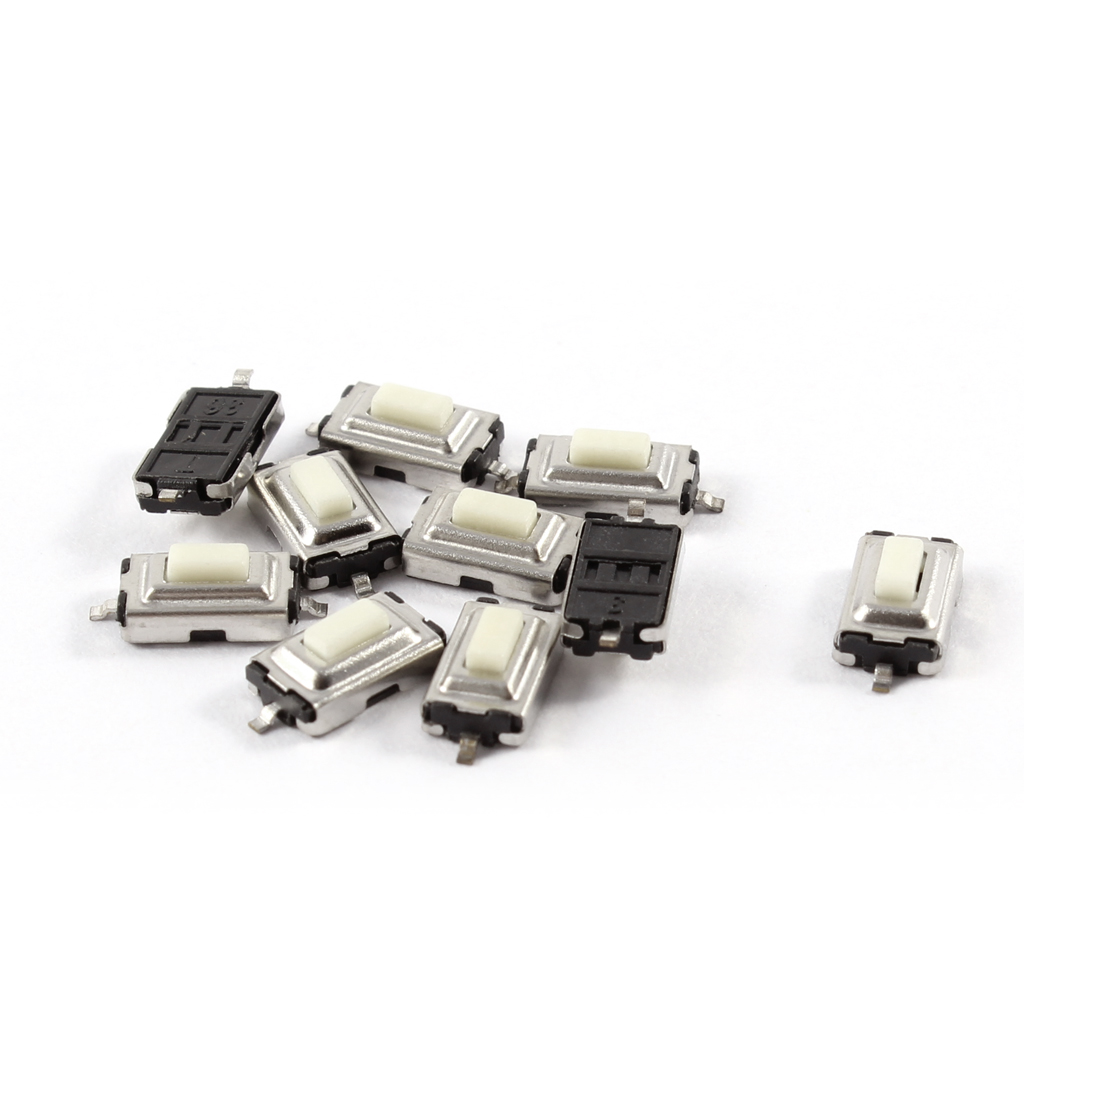 10 Pcs 6x3.5x2.5mm Momentary Push Button SMD SMT Tactile Tact Switch